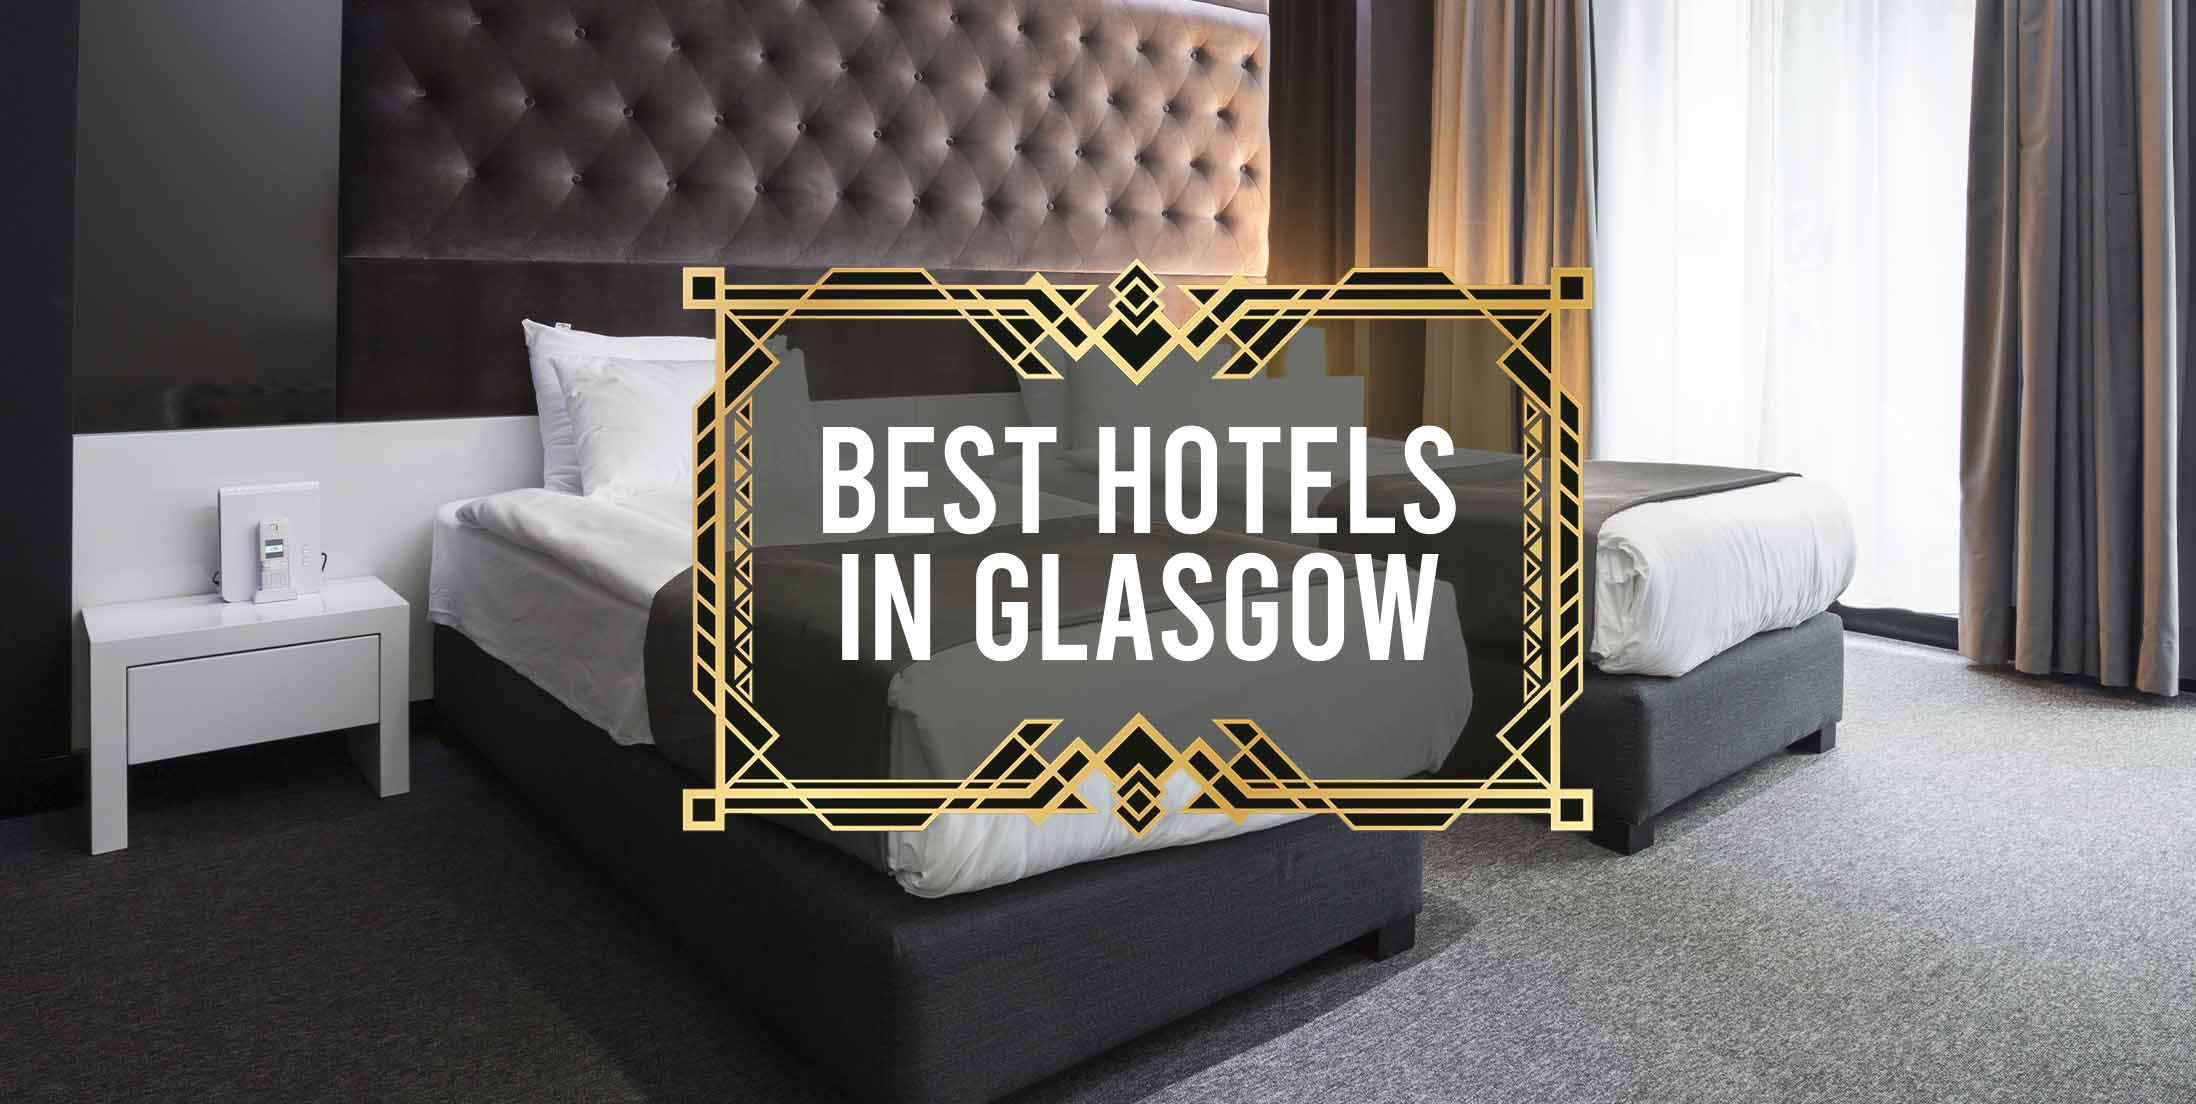 Best Hotels in Glasgow